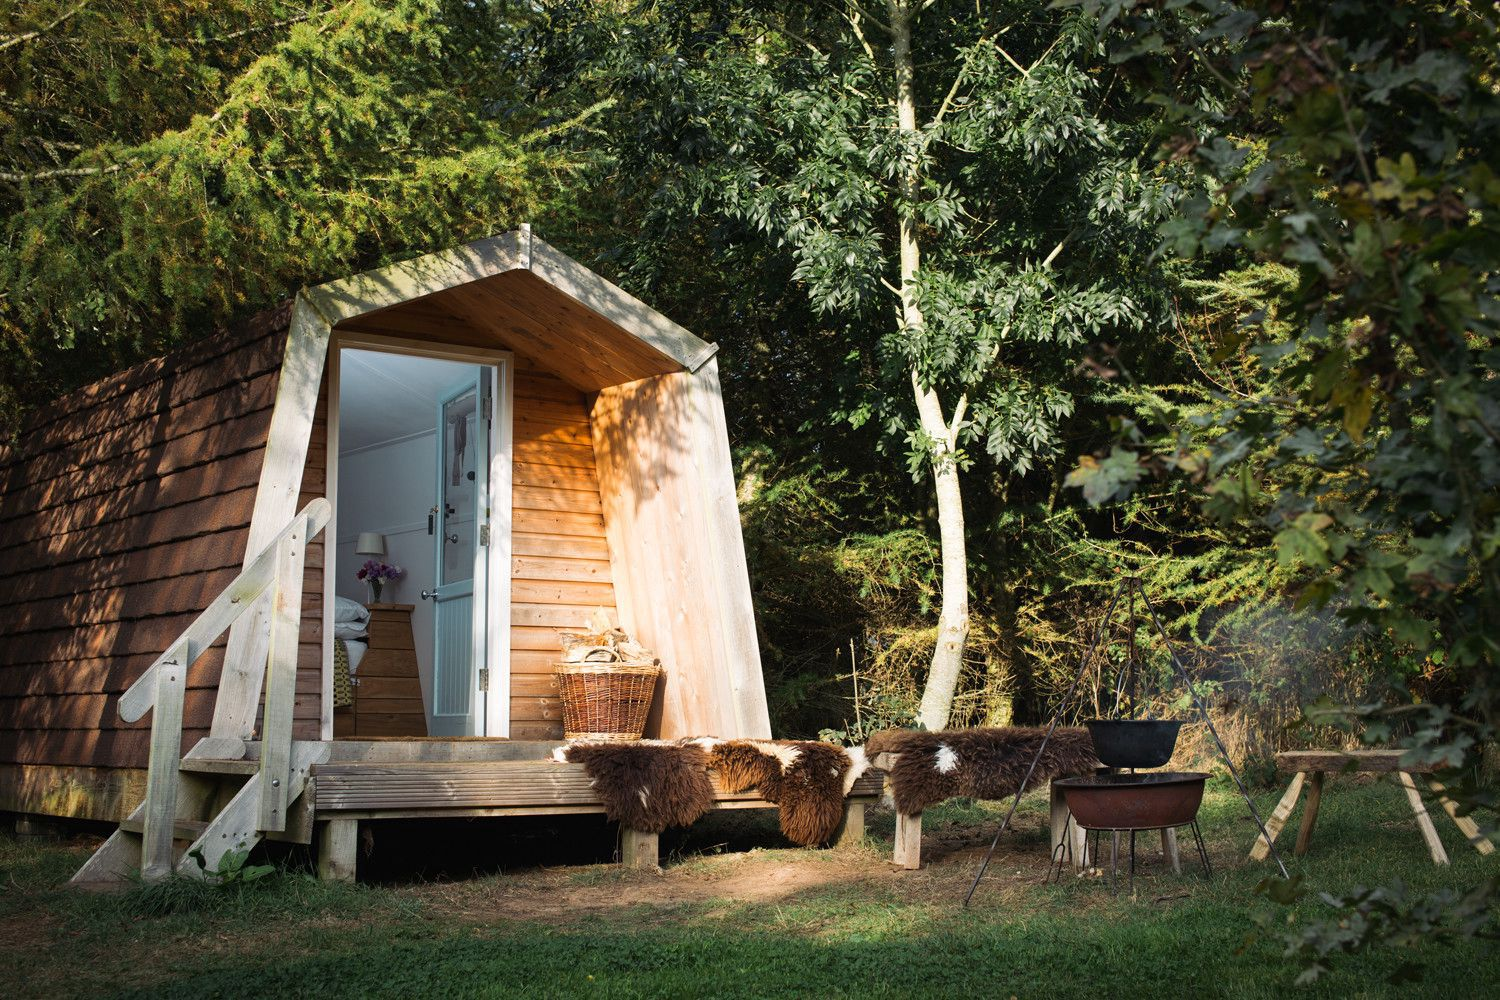 Pods in Wales – Best Glamping Pods in Wales